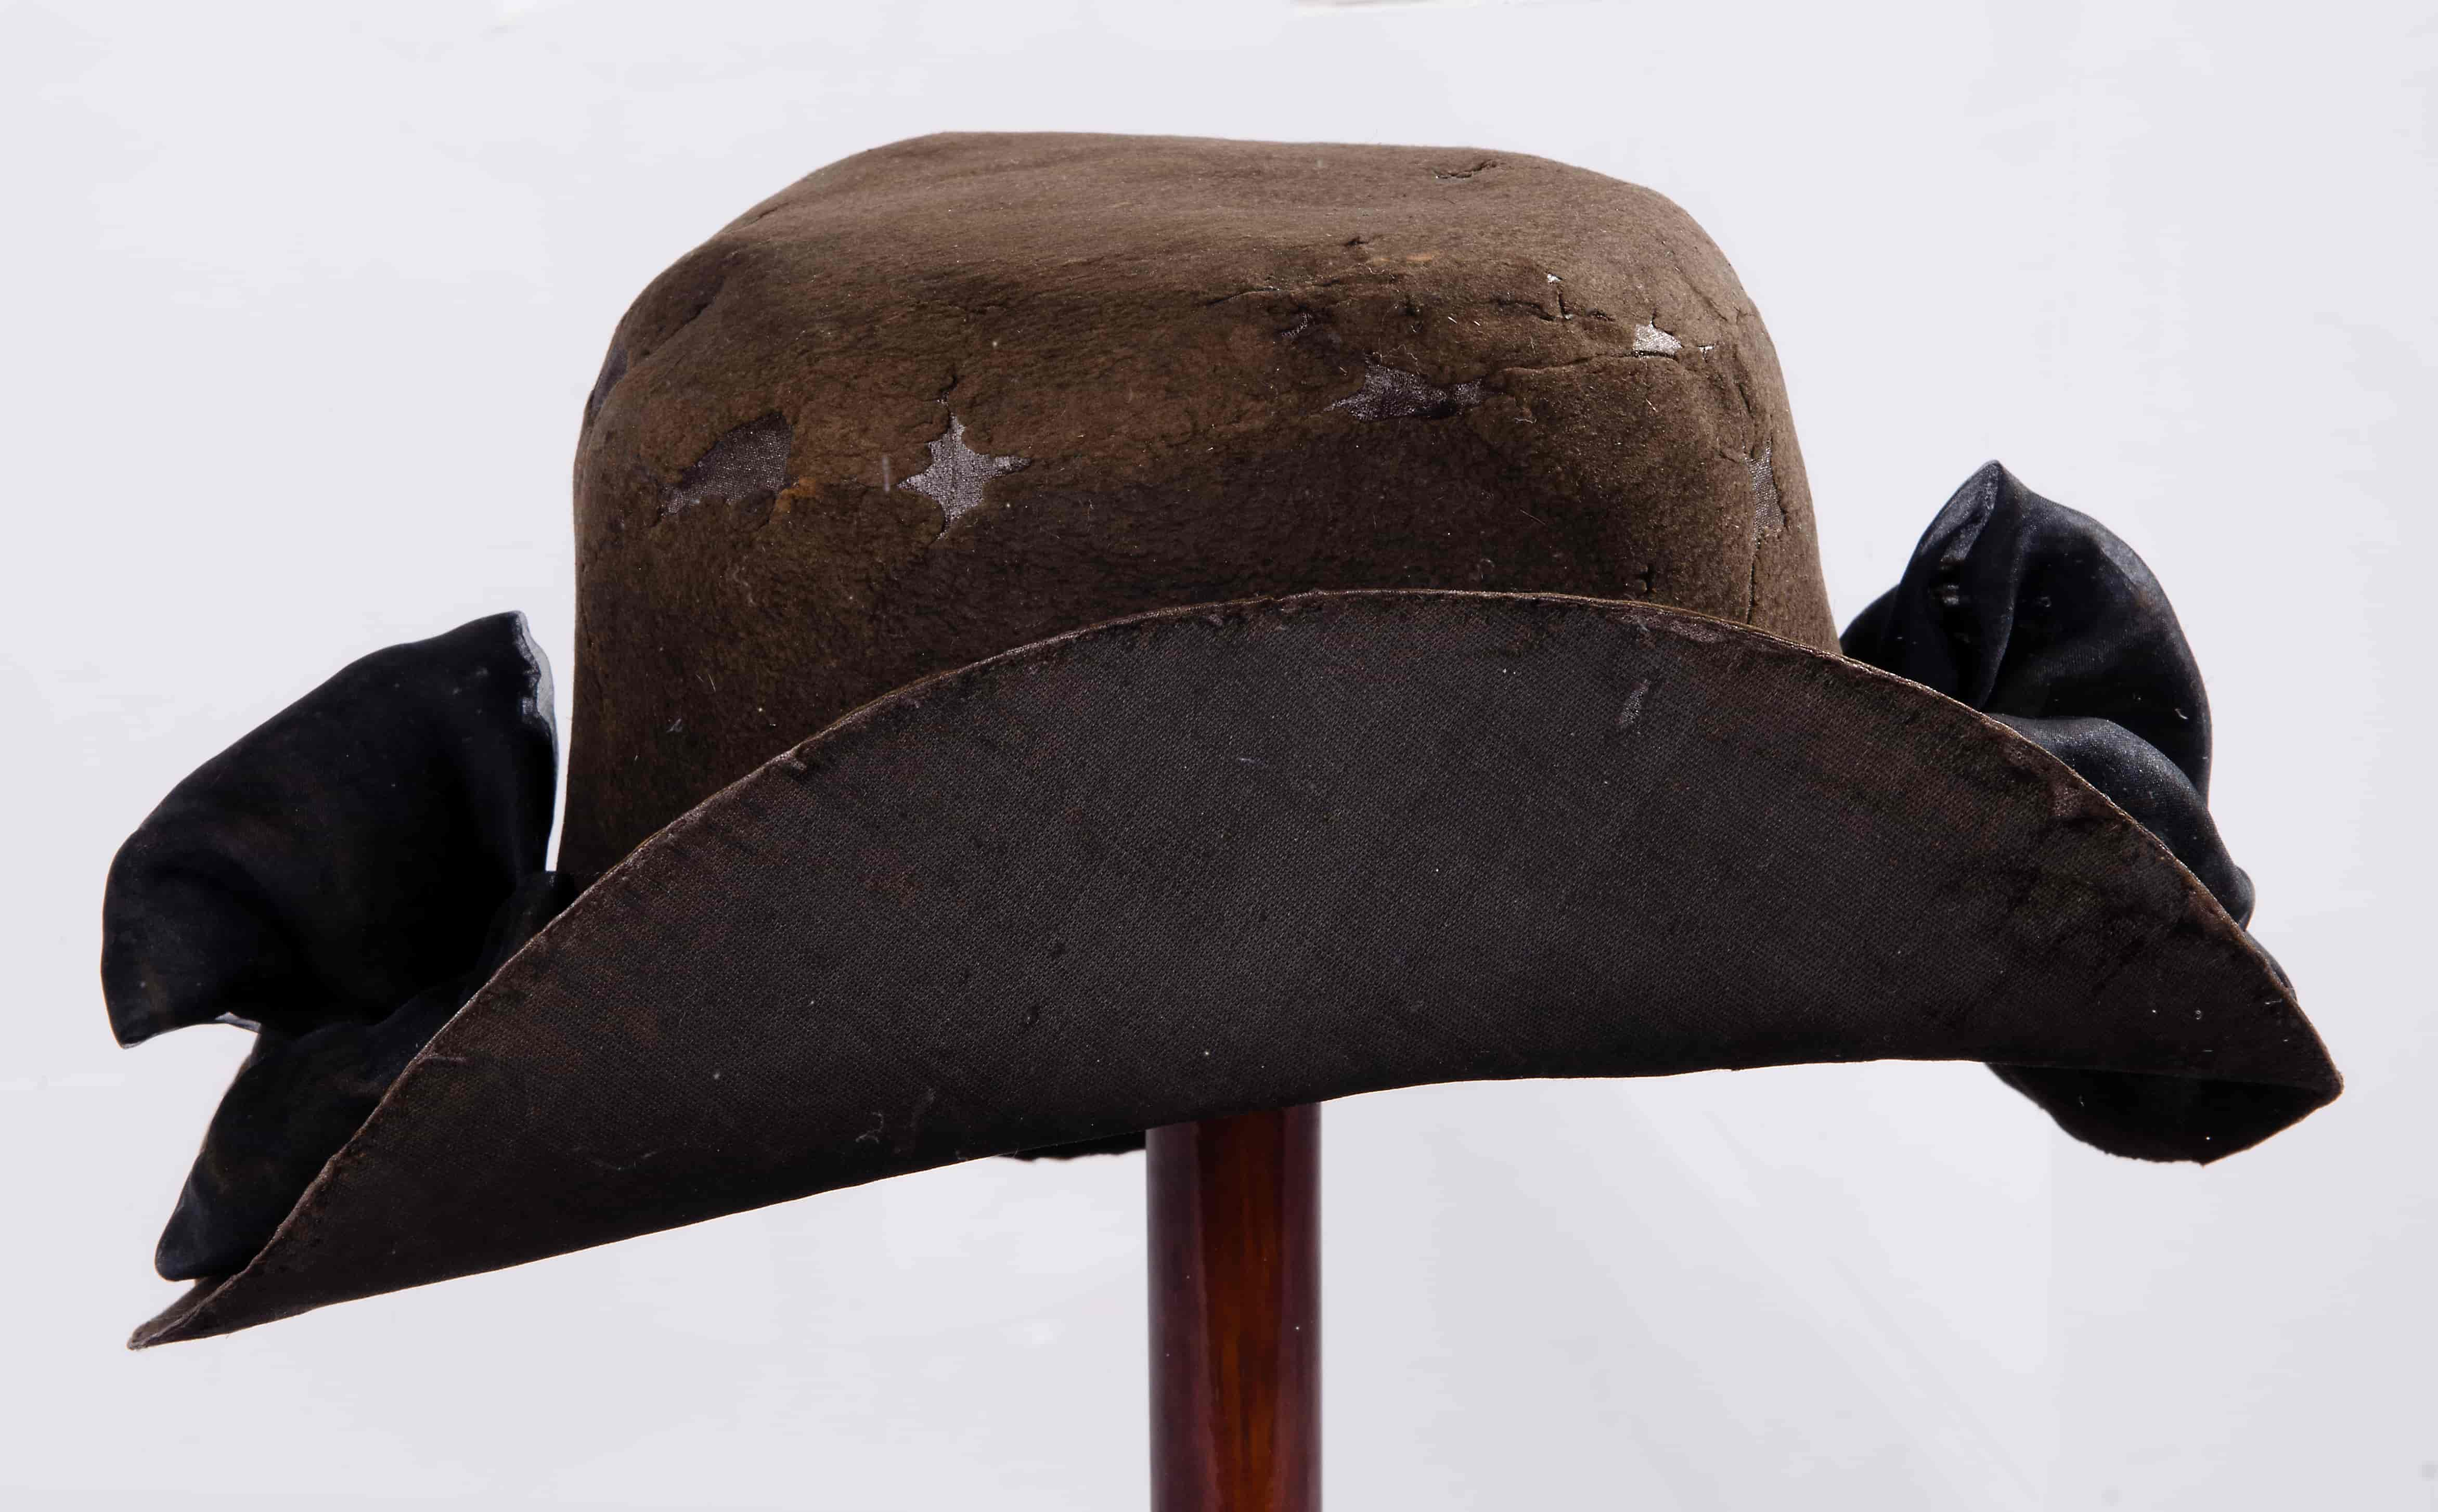 Photo of a brown hat with black bows and upturned brim to front. The hat looks well worn with some bare patches and is displayed on a stand. White background.